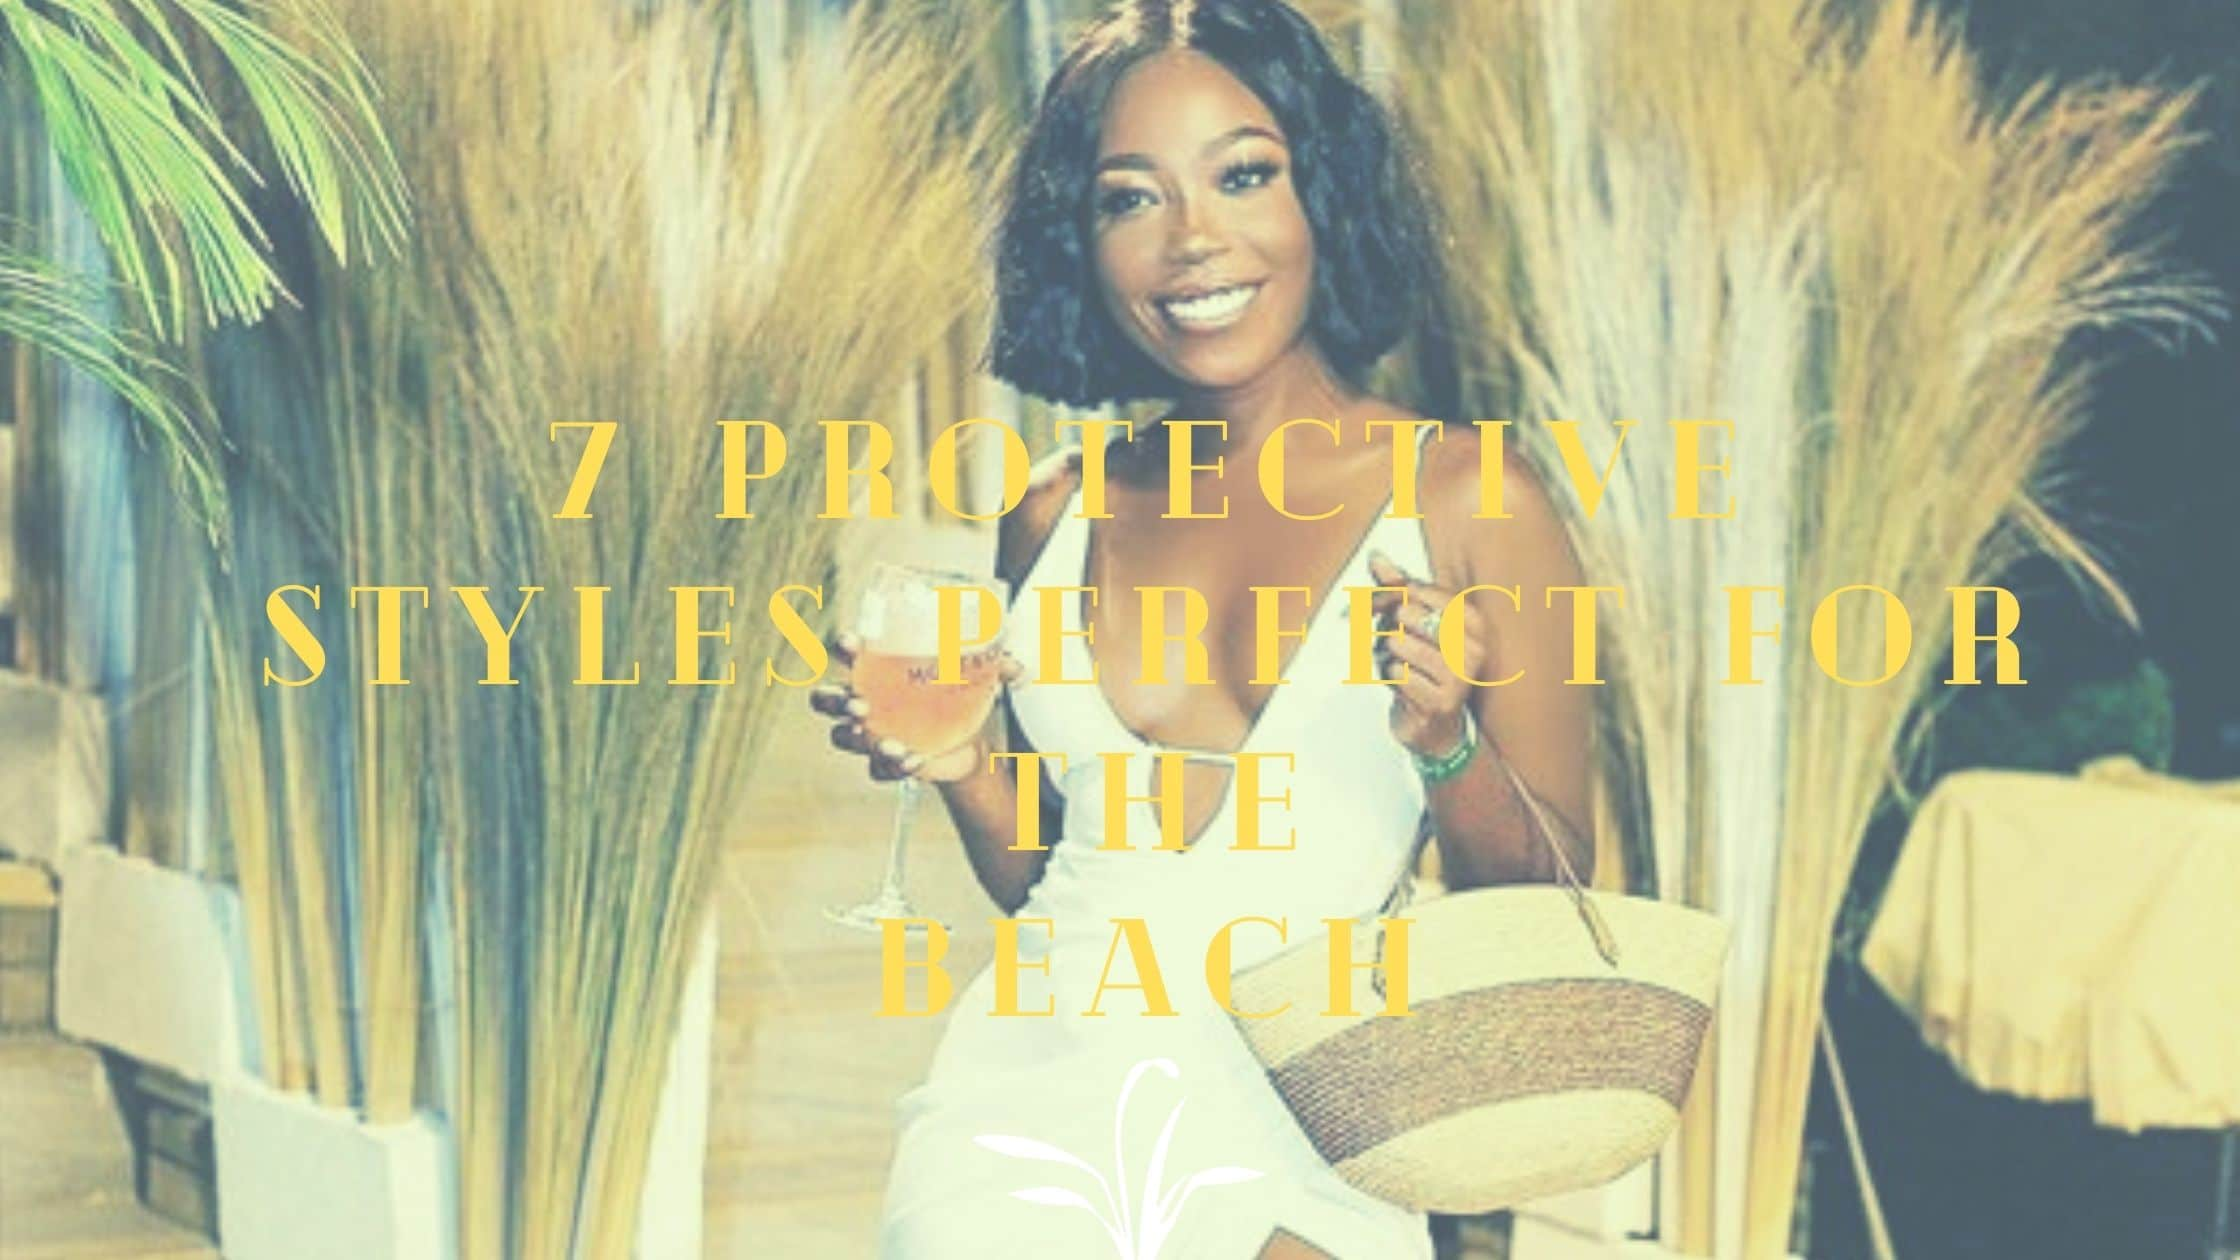 7 Protective Styles Perfect for the Beach